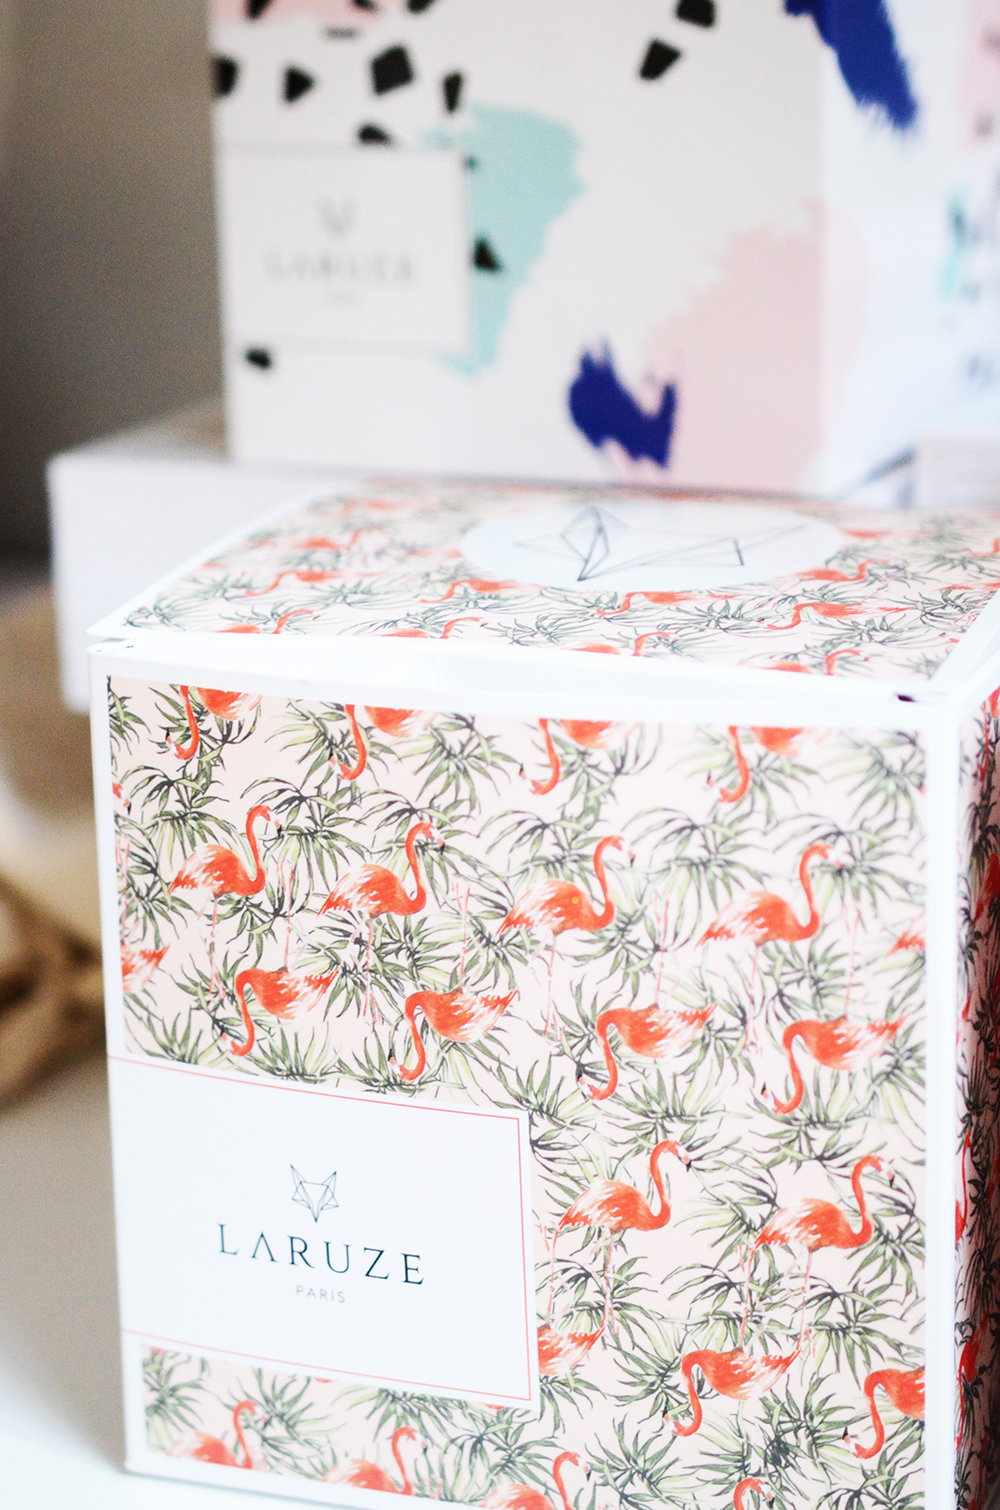 Laruze paris packaging